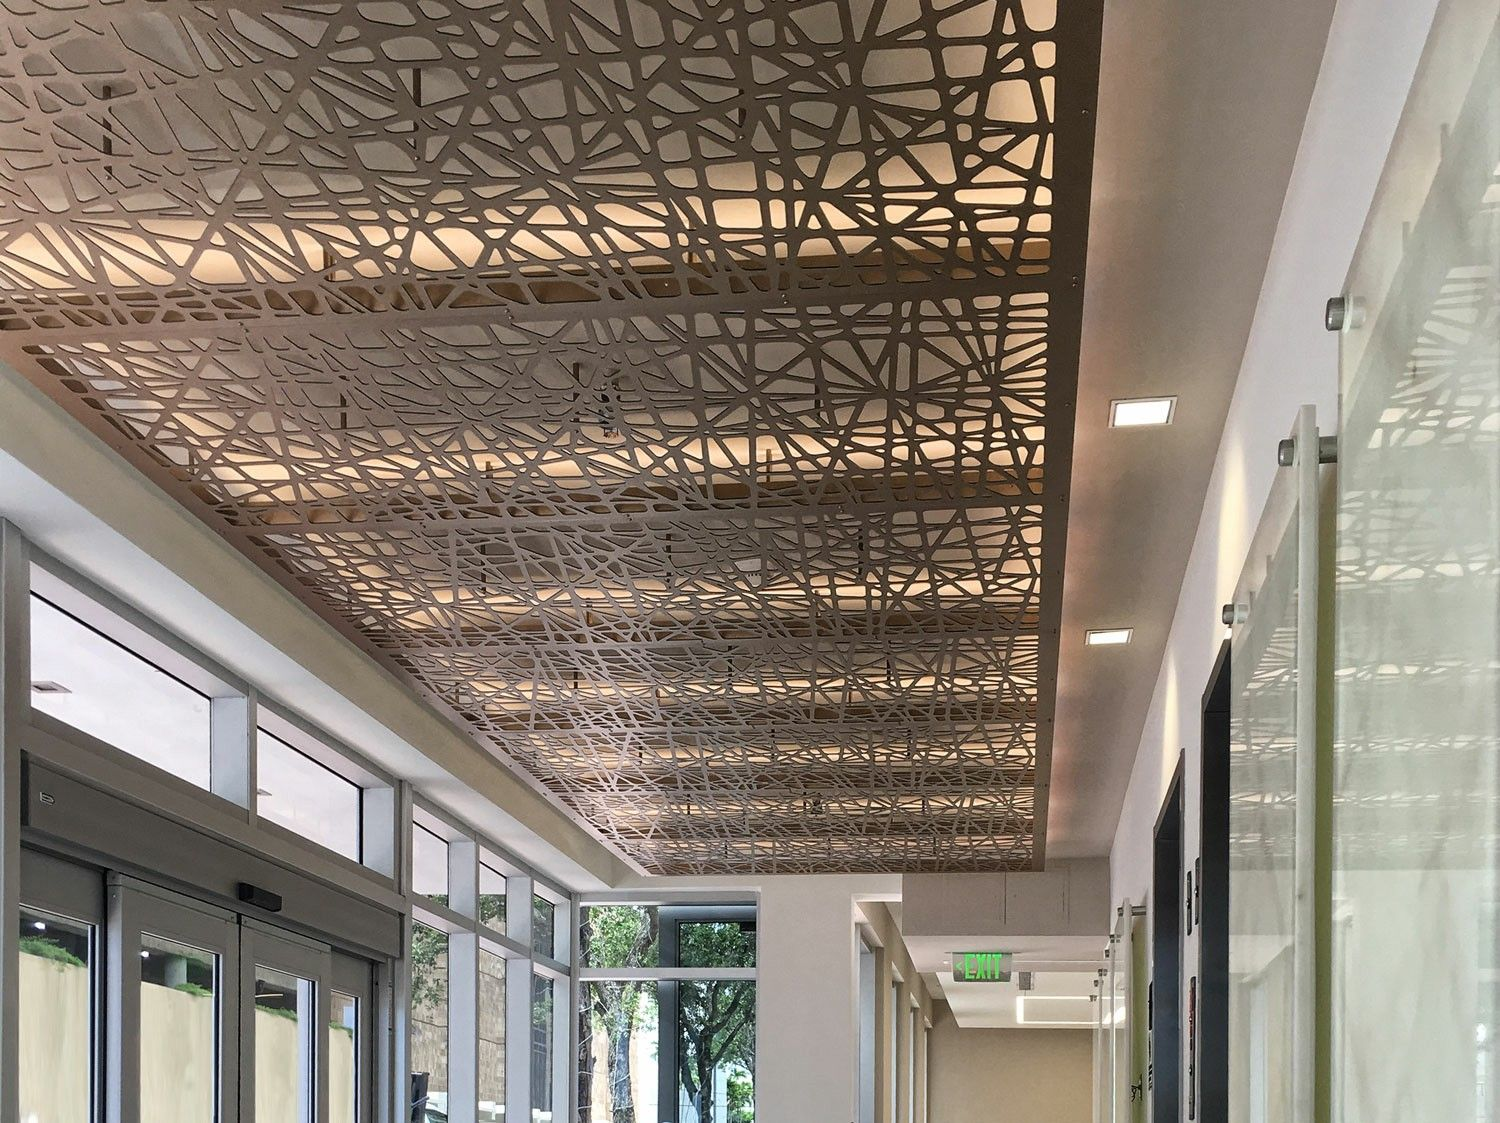 Decorative Cnc Screen Ceiling Panels With Led Lights Elevator Lobby Suspendedceilings Suspended Ceiling Design Ceiling Design Modern False Ceiling Design